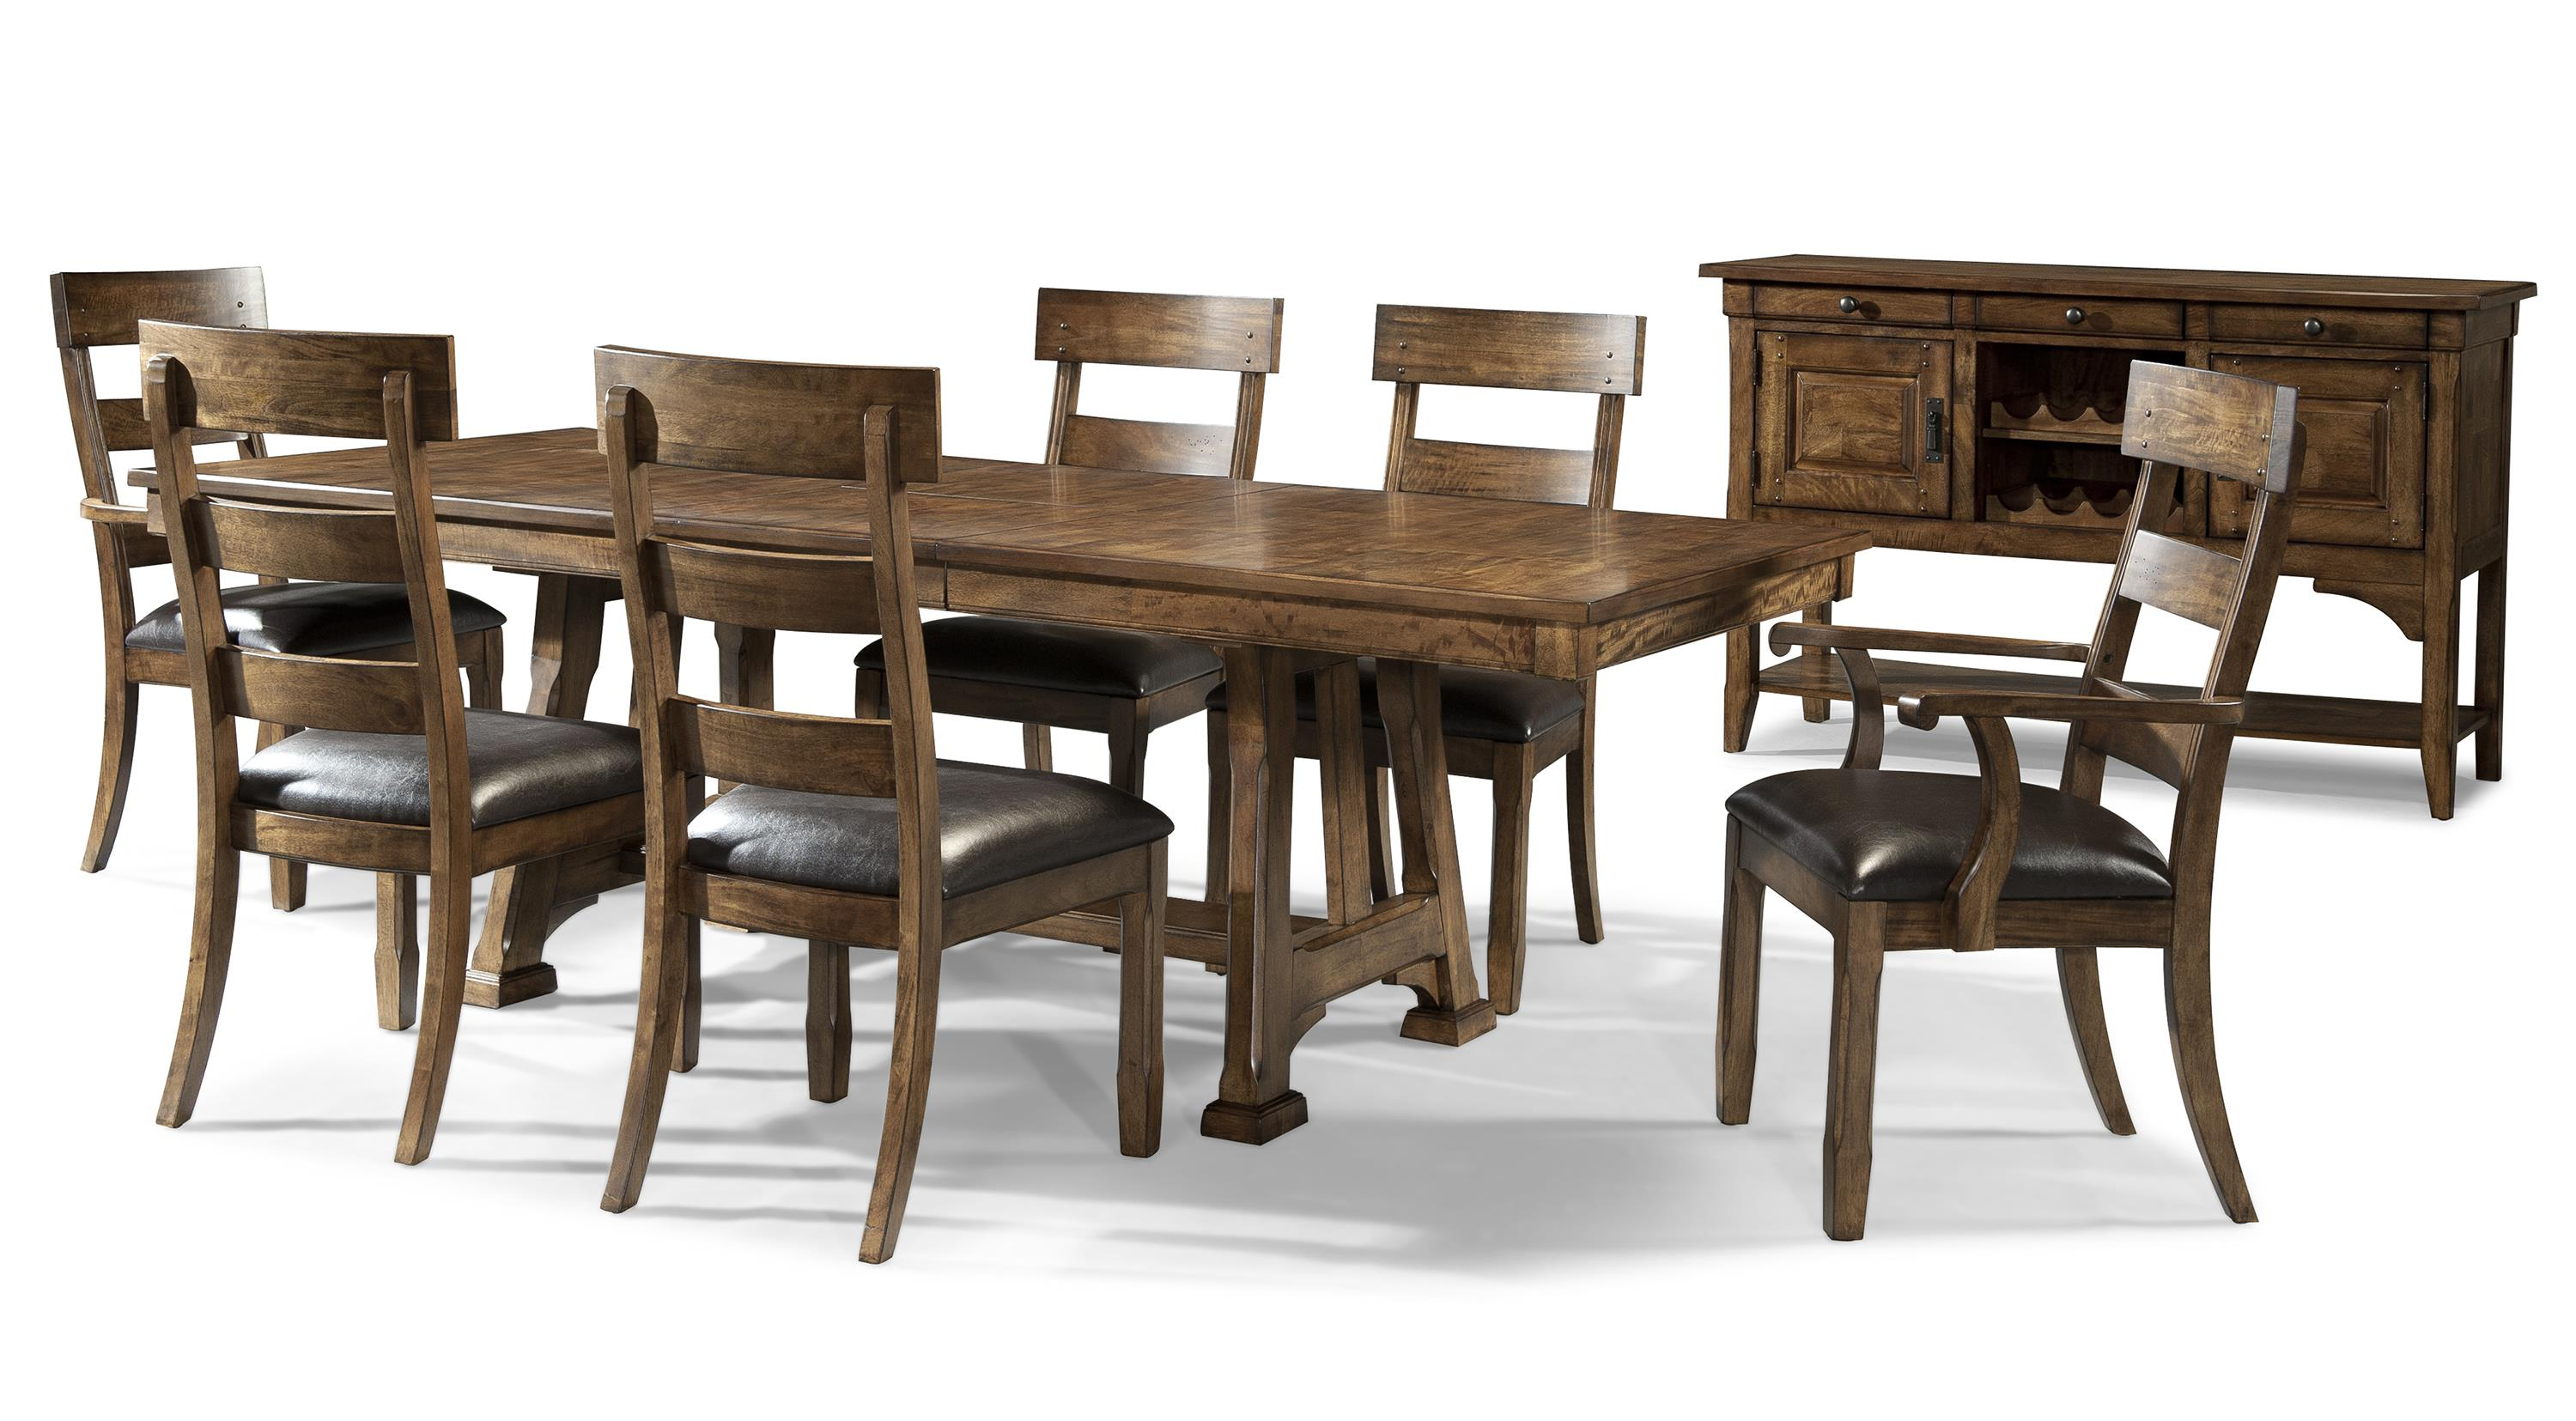 Ozark casual dining room group by aamerica wolf furniture for Casual dining room furniture